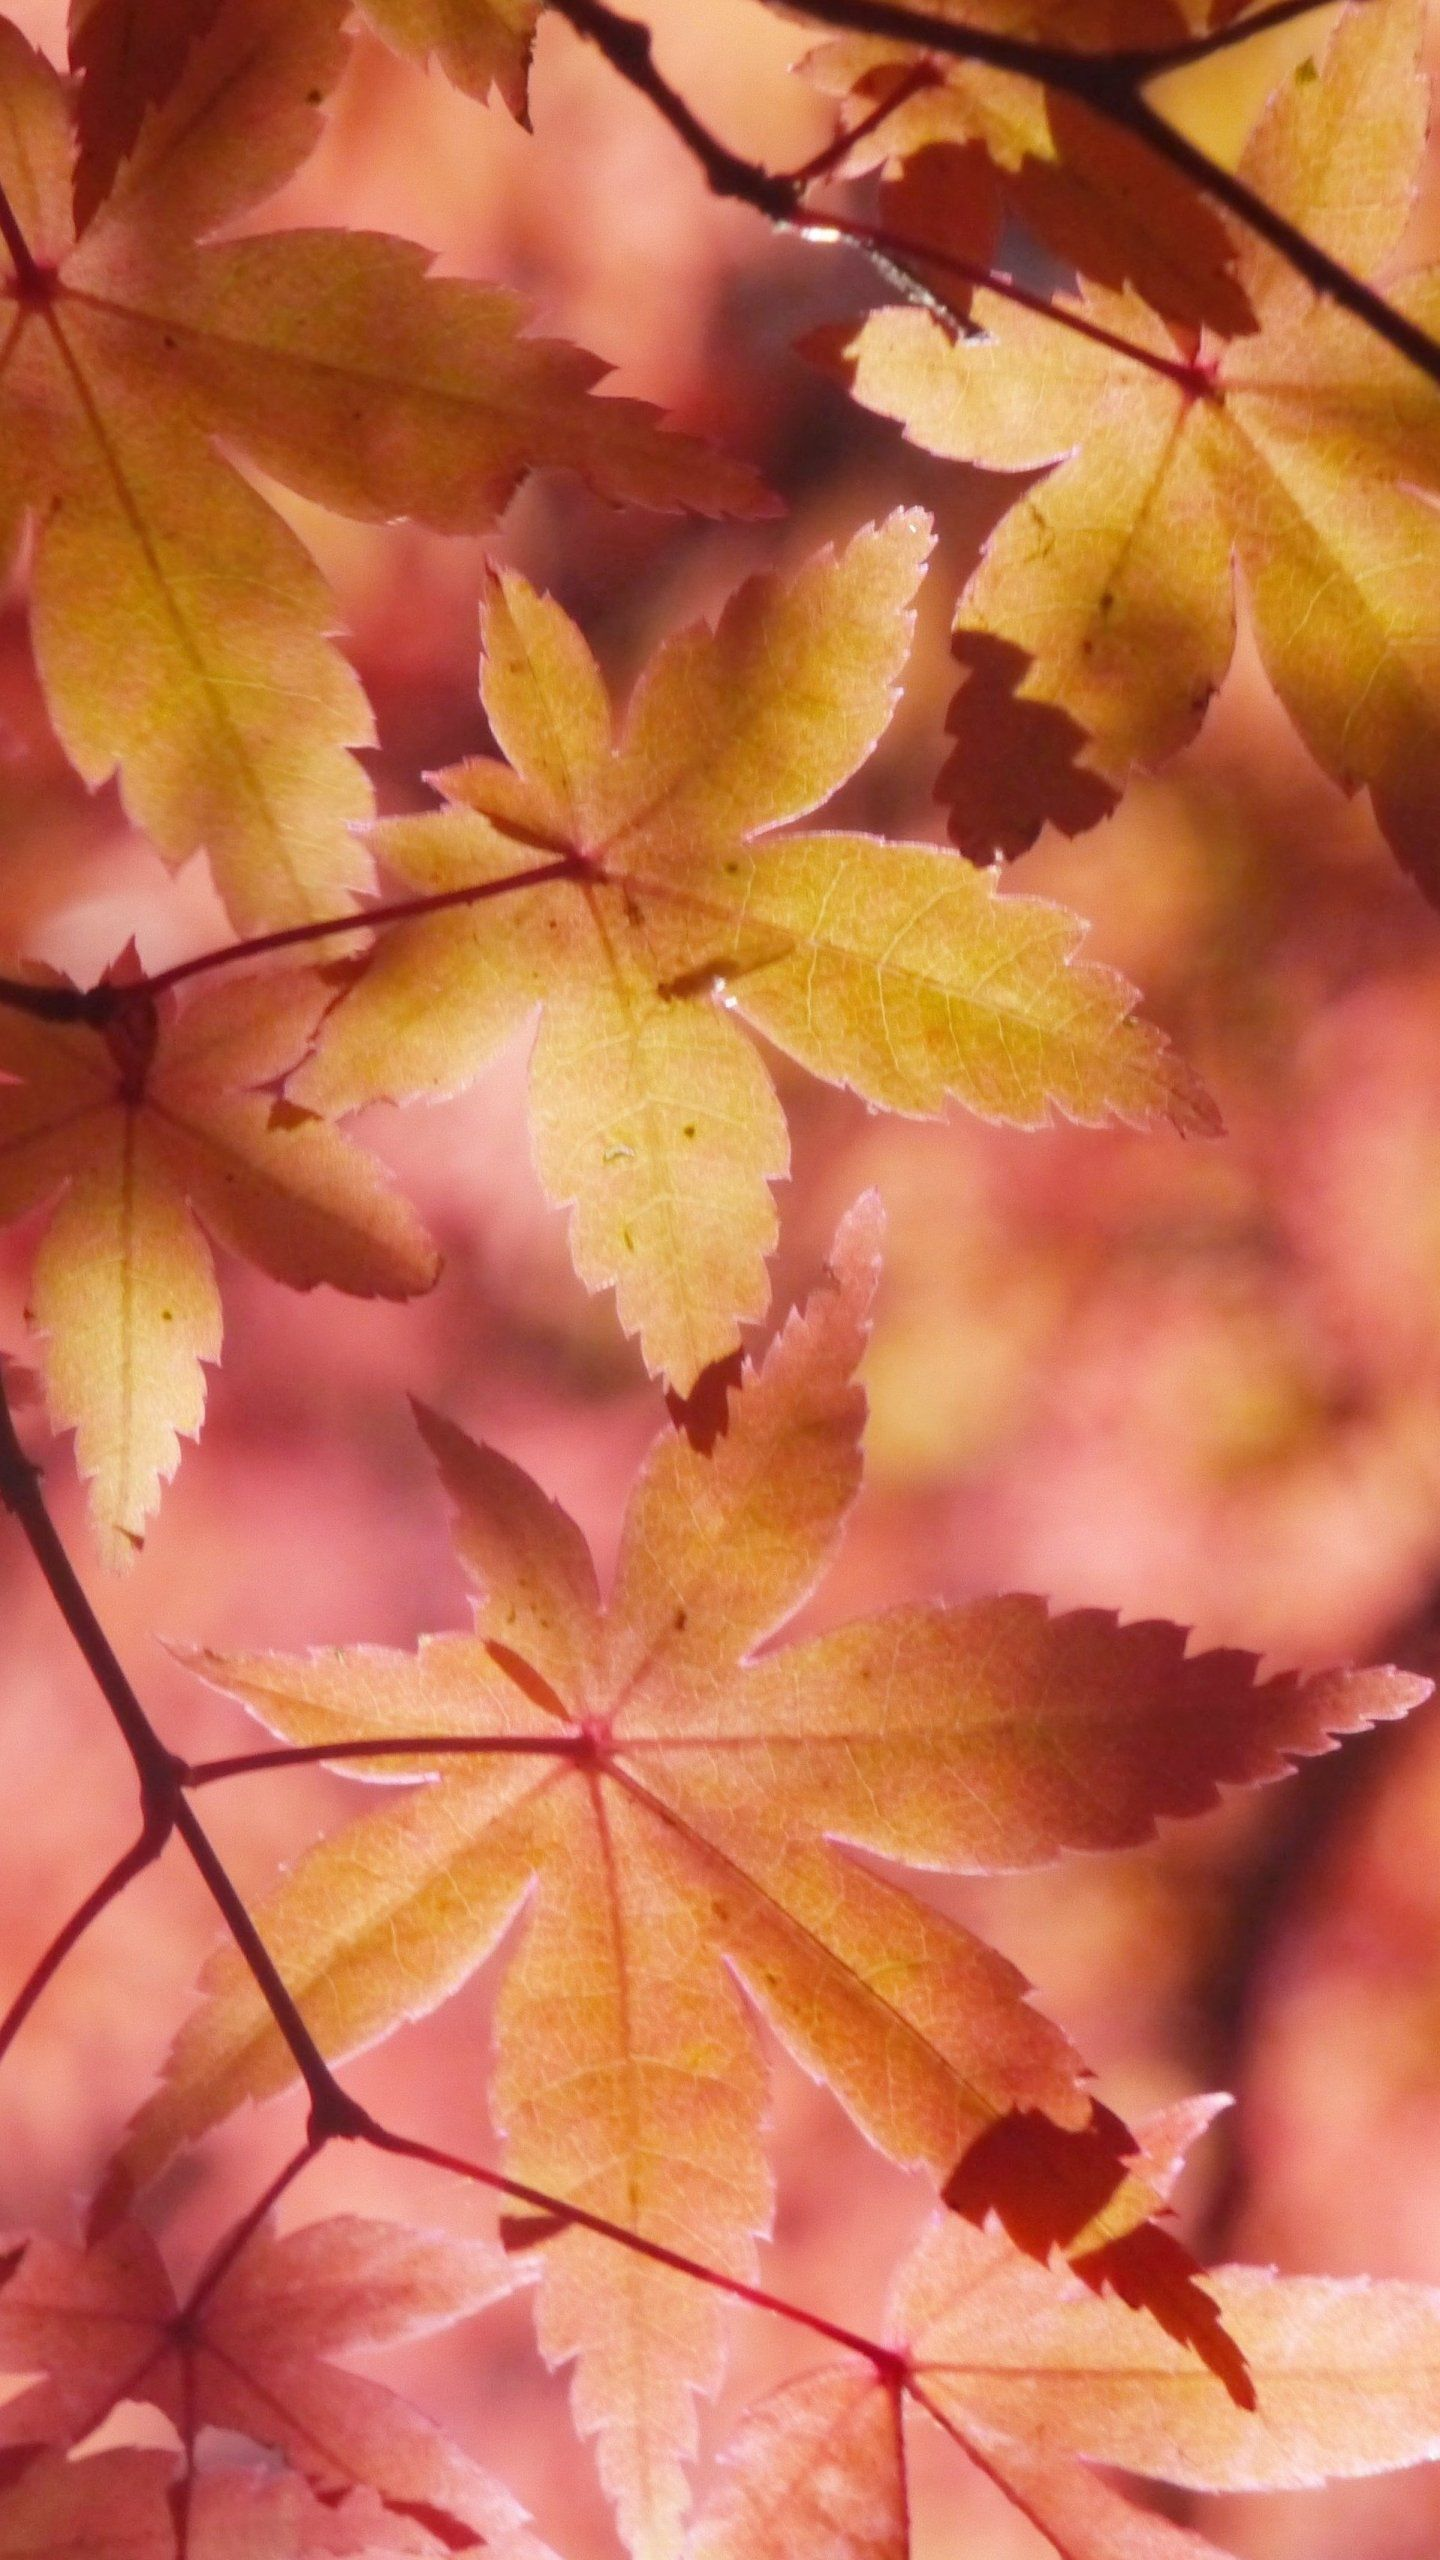 Autumn Maple Leaves Wallpaper Iphone Android Desktop Backgrounds Leaves Wallpaper Iphone Leaf Wallpaper Desktop Wallpaper Fall